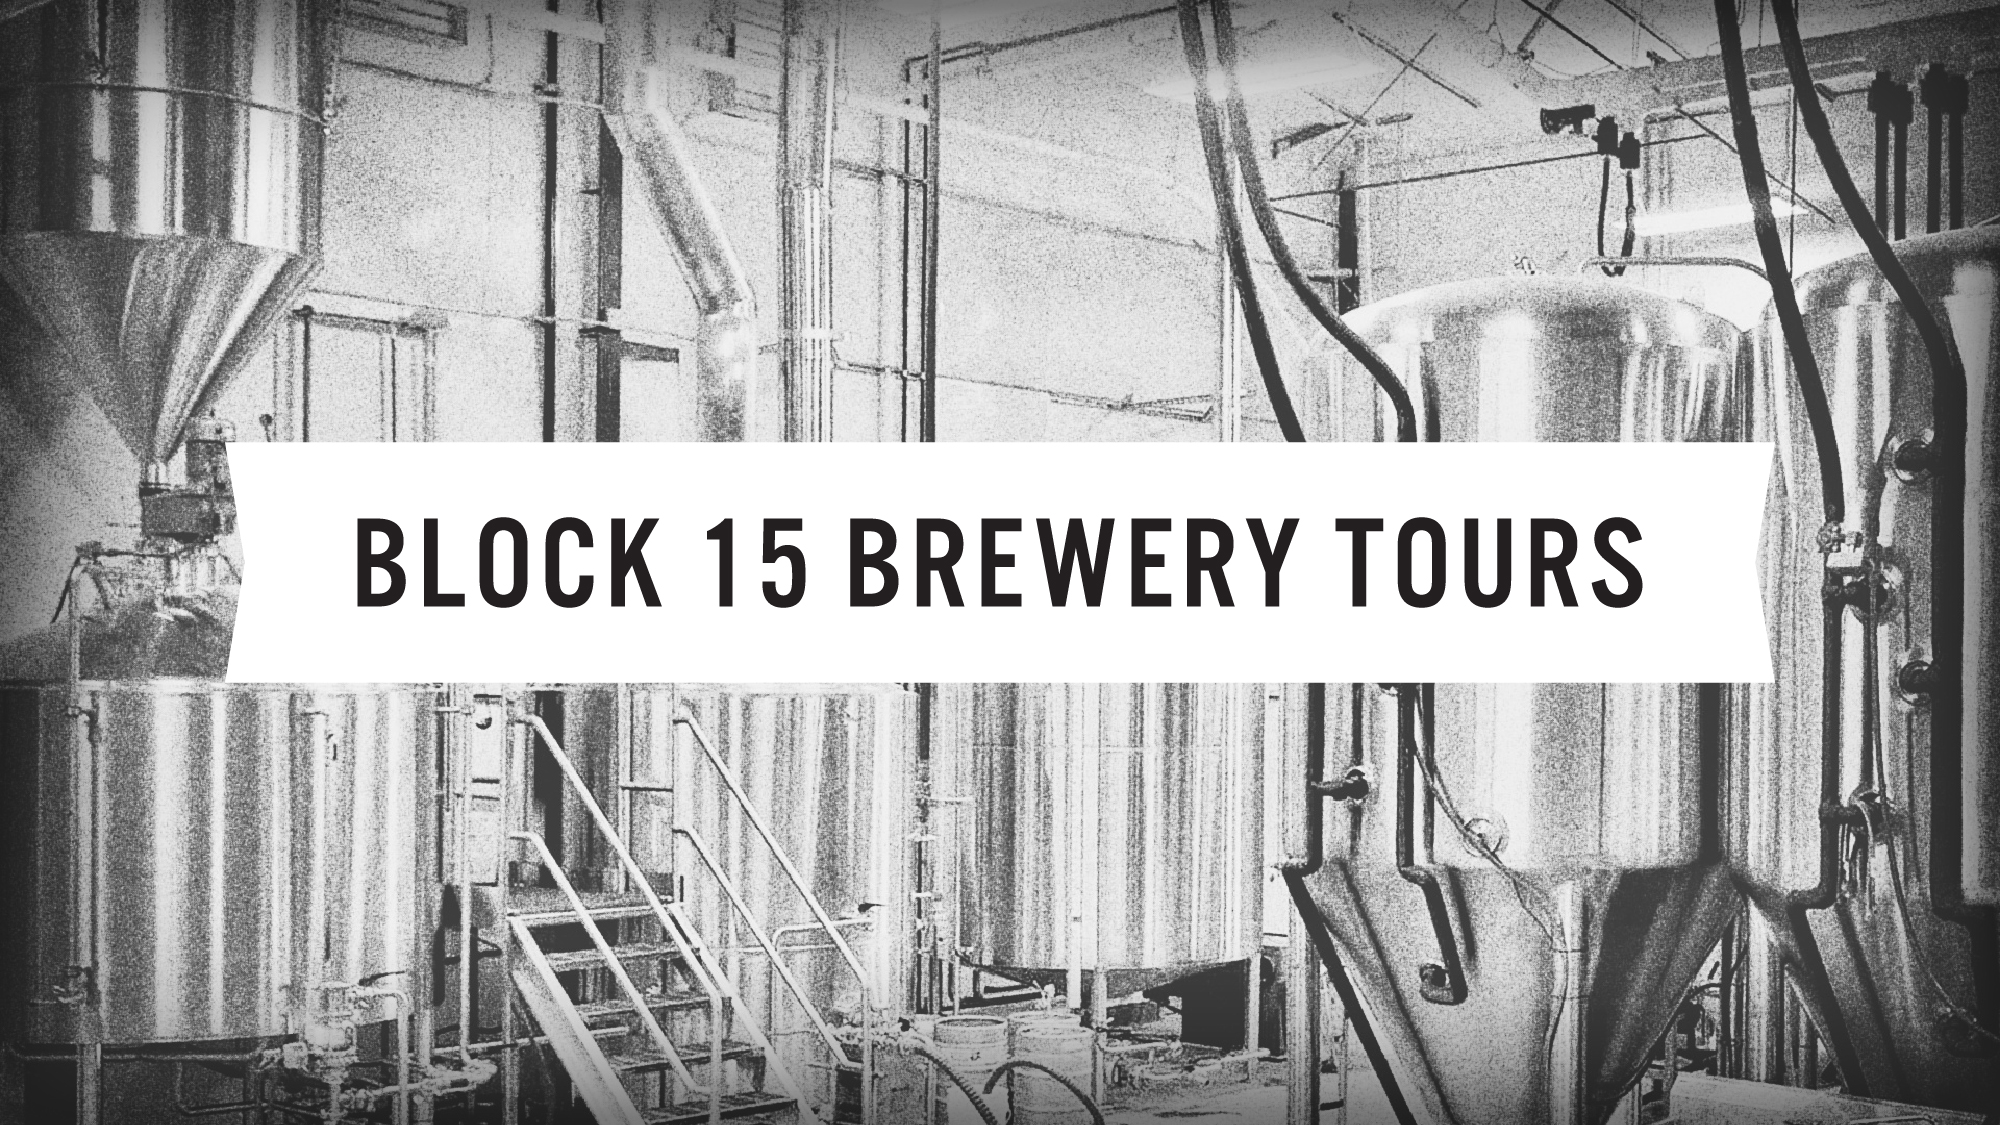 Block 15 Brewery Tours